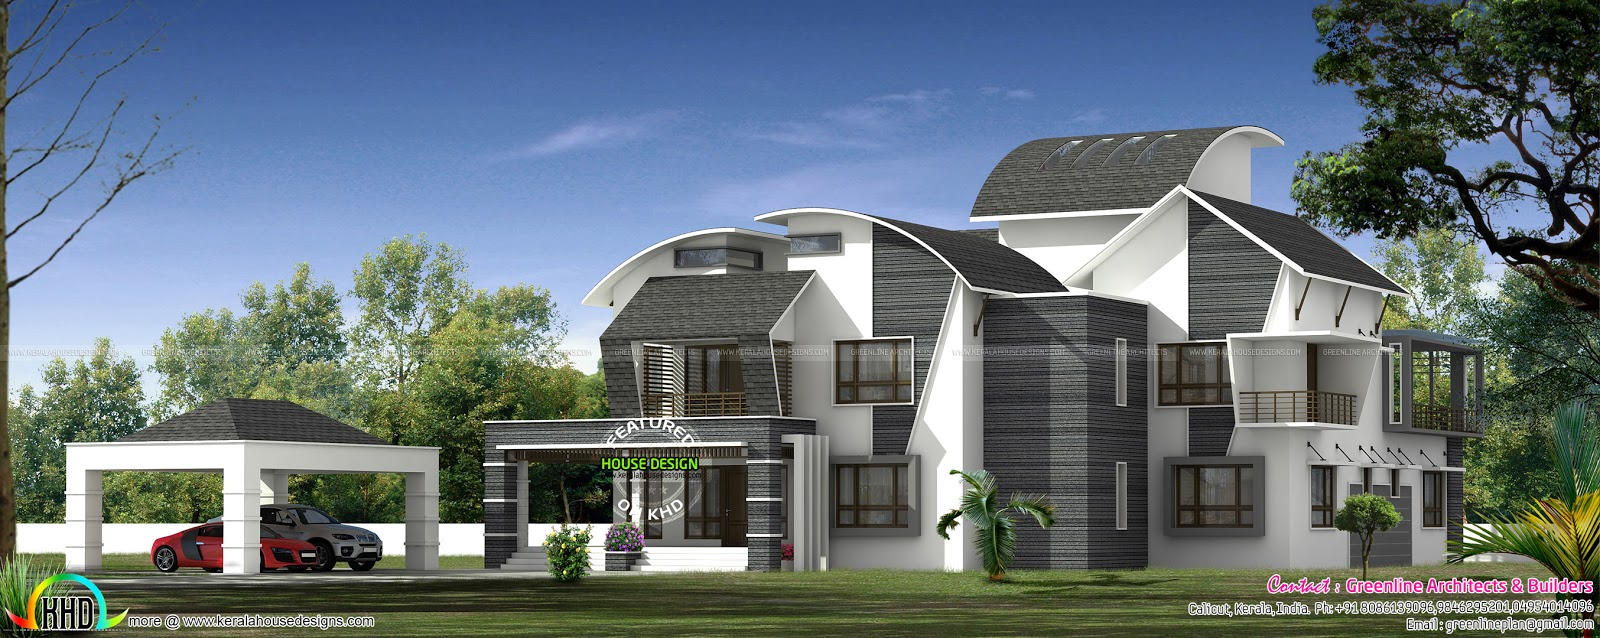 Ultra modern contemporary style luxury home kerala home design and floor plans for Ultra modern contemporary house plans